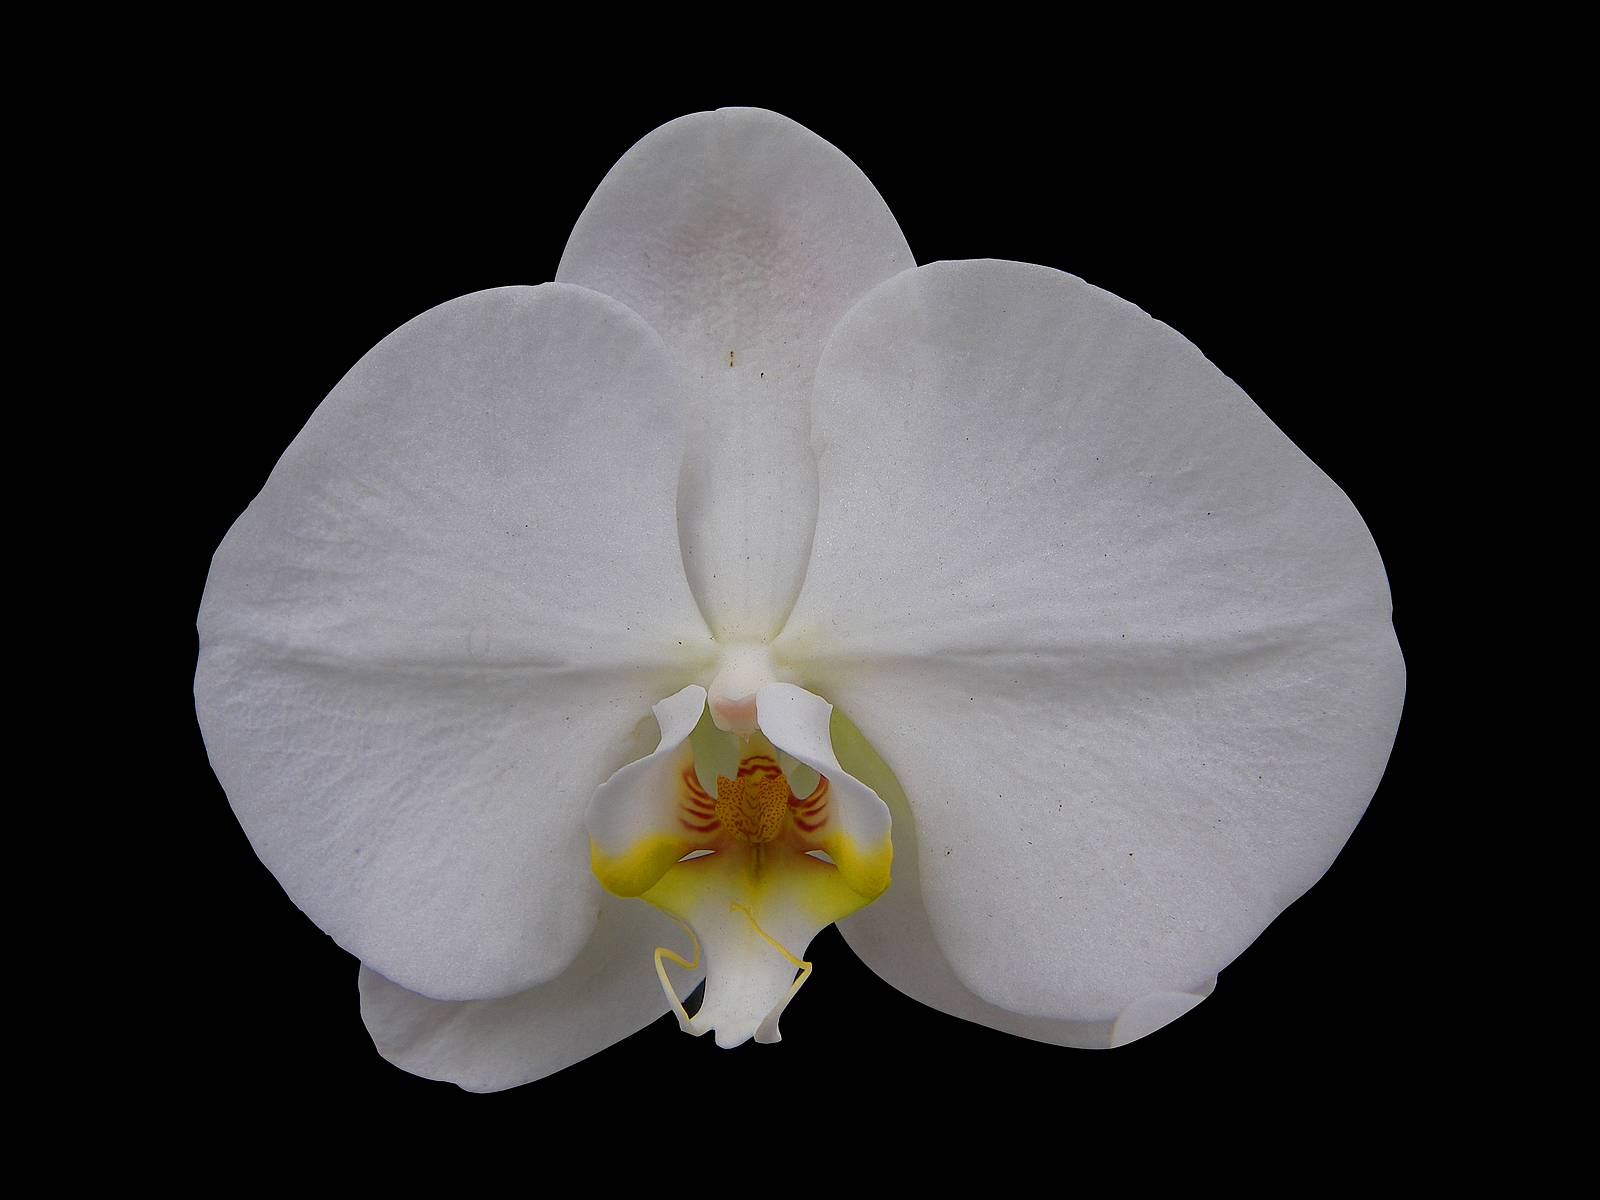 single phalaenopsis bloom